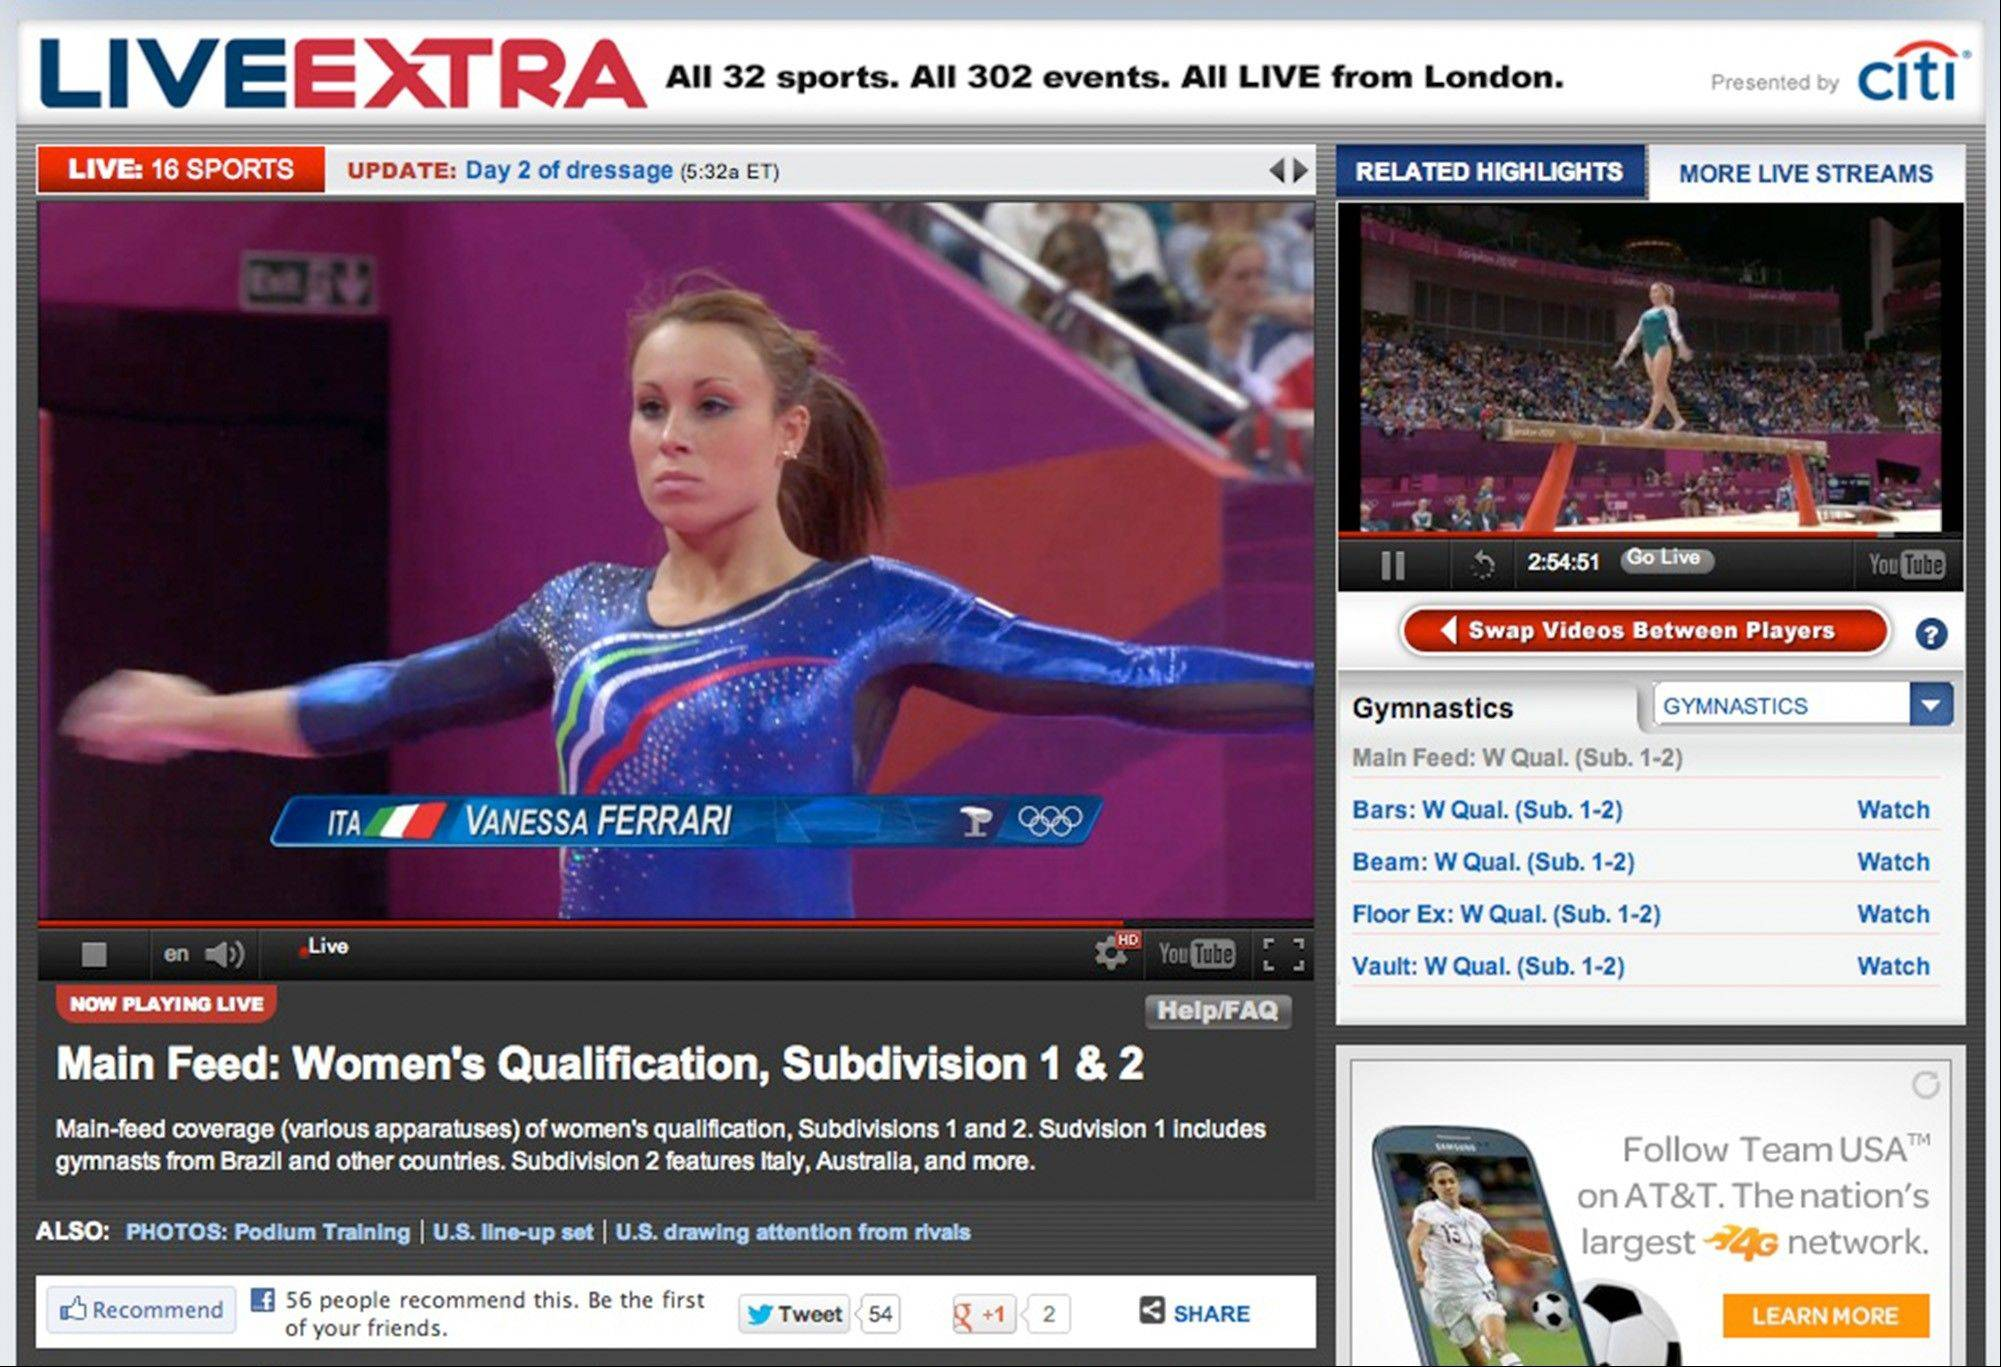 Review: NBC offers plenty of live Olympics online